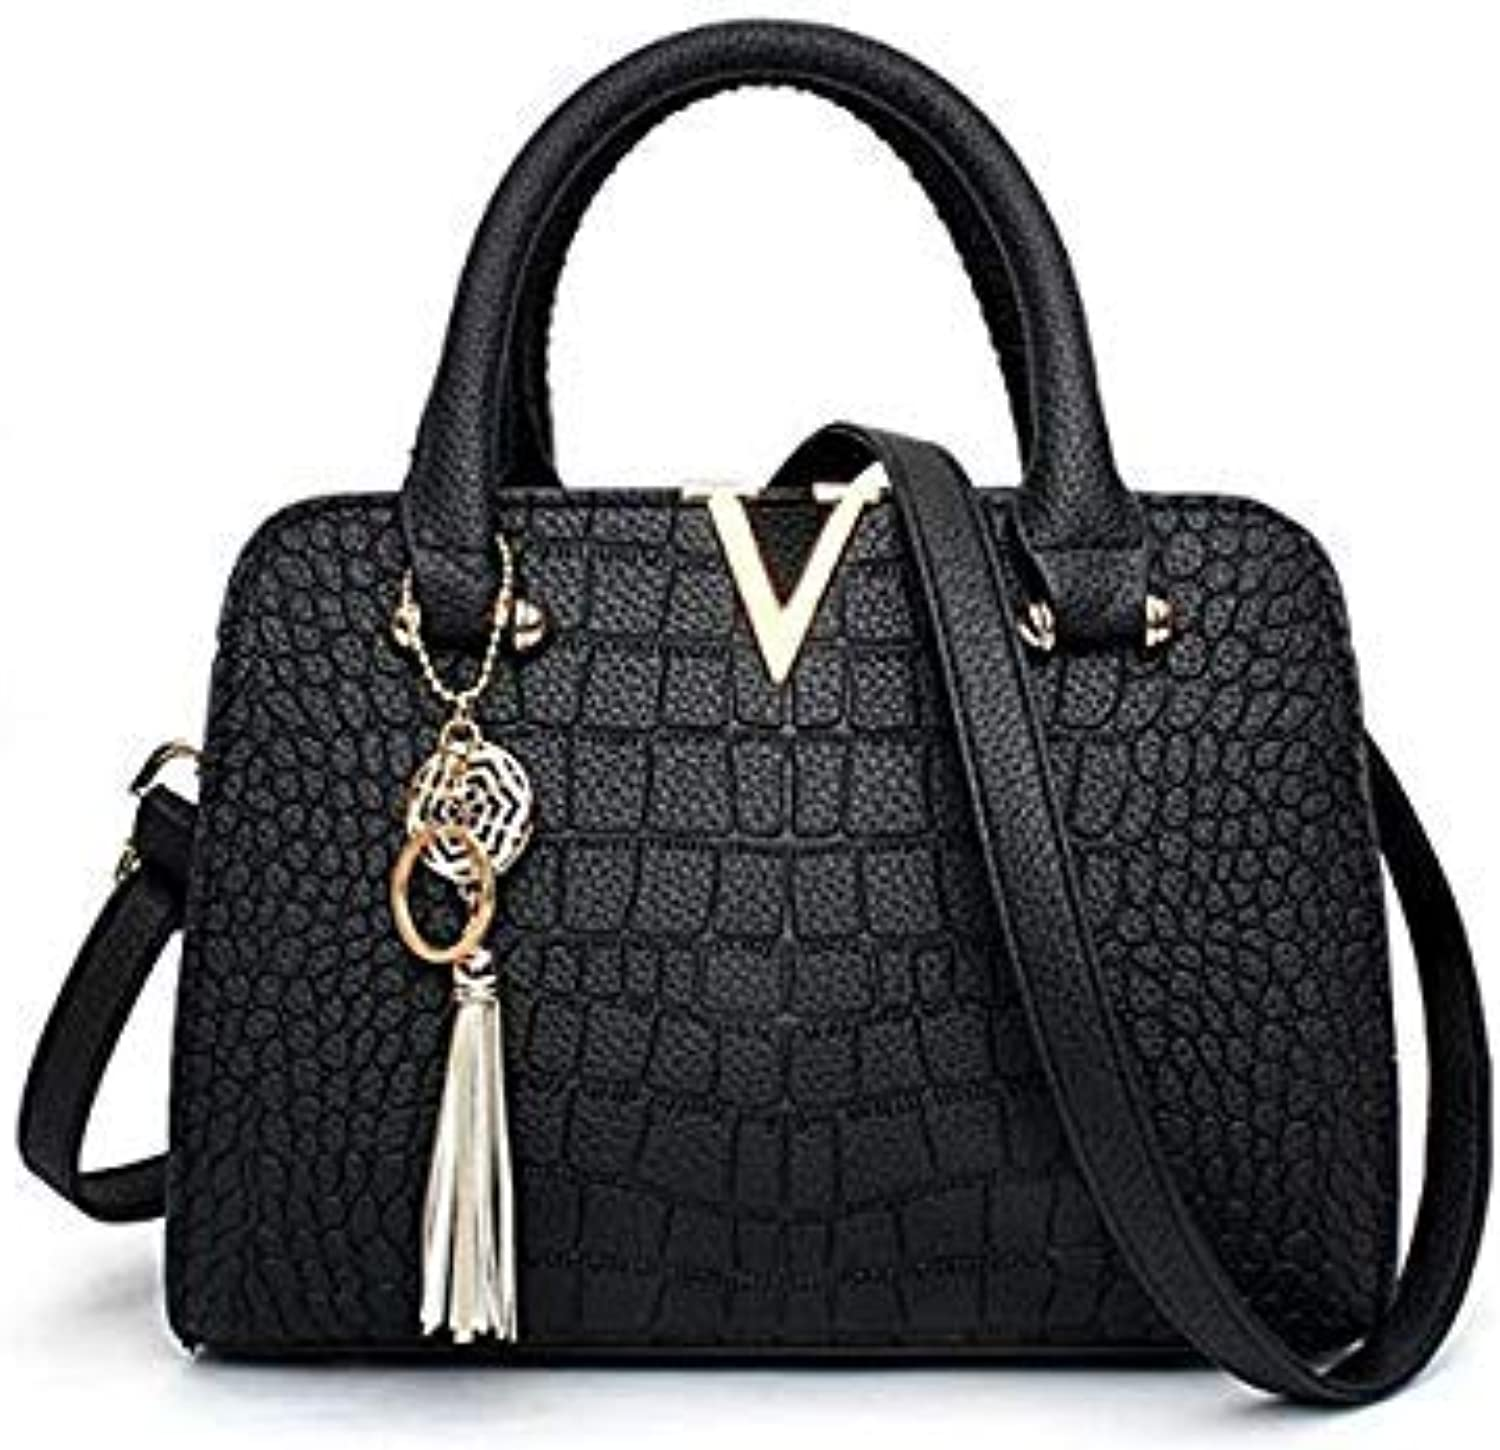 Tassel Fashion Women Handbag Bag Handbags Women Messenger Bags Crossbody Shoulder Bags Ladies Leather Handbag sc0411 color Black Size 28X12X20CM